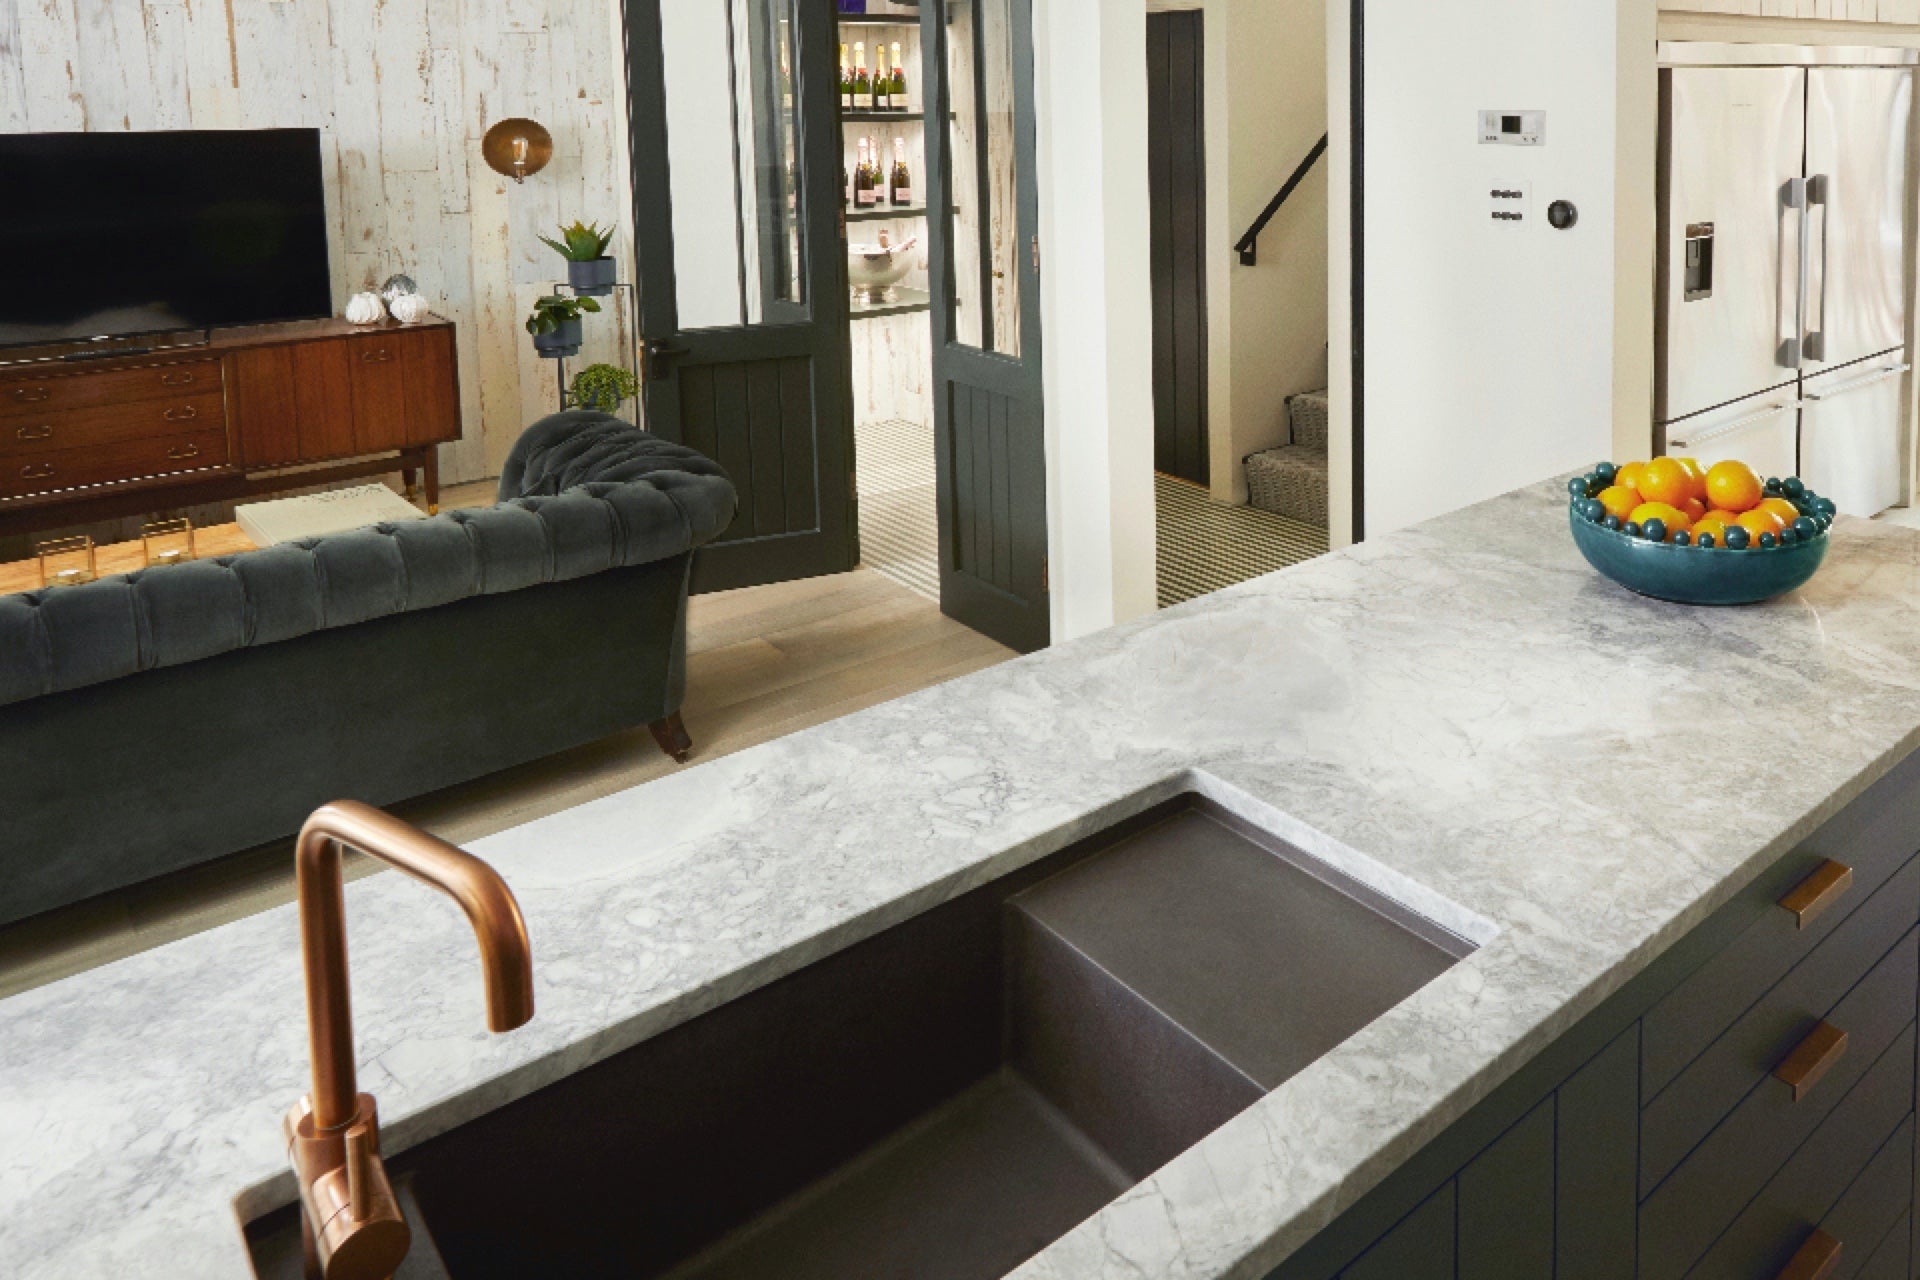 Kitchen and snug in the luxury London townhouse